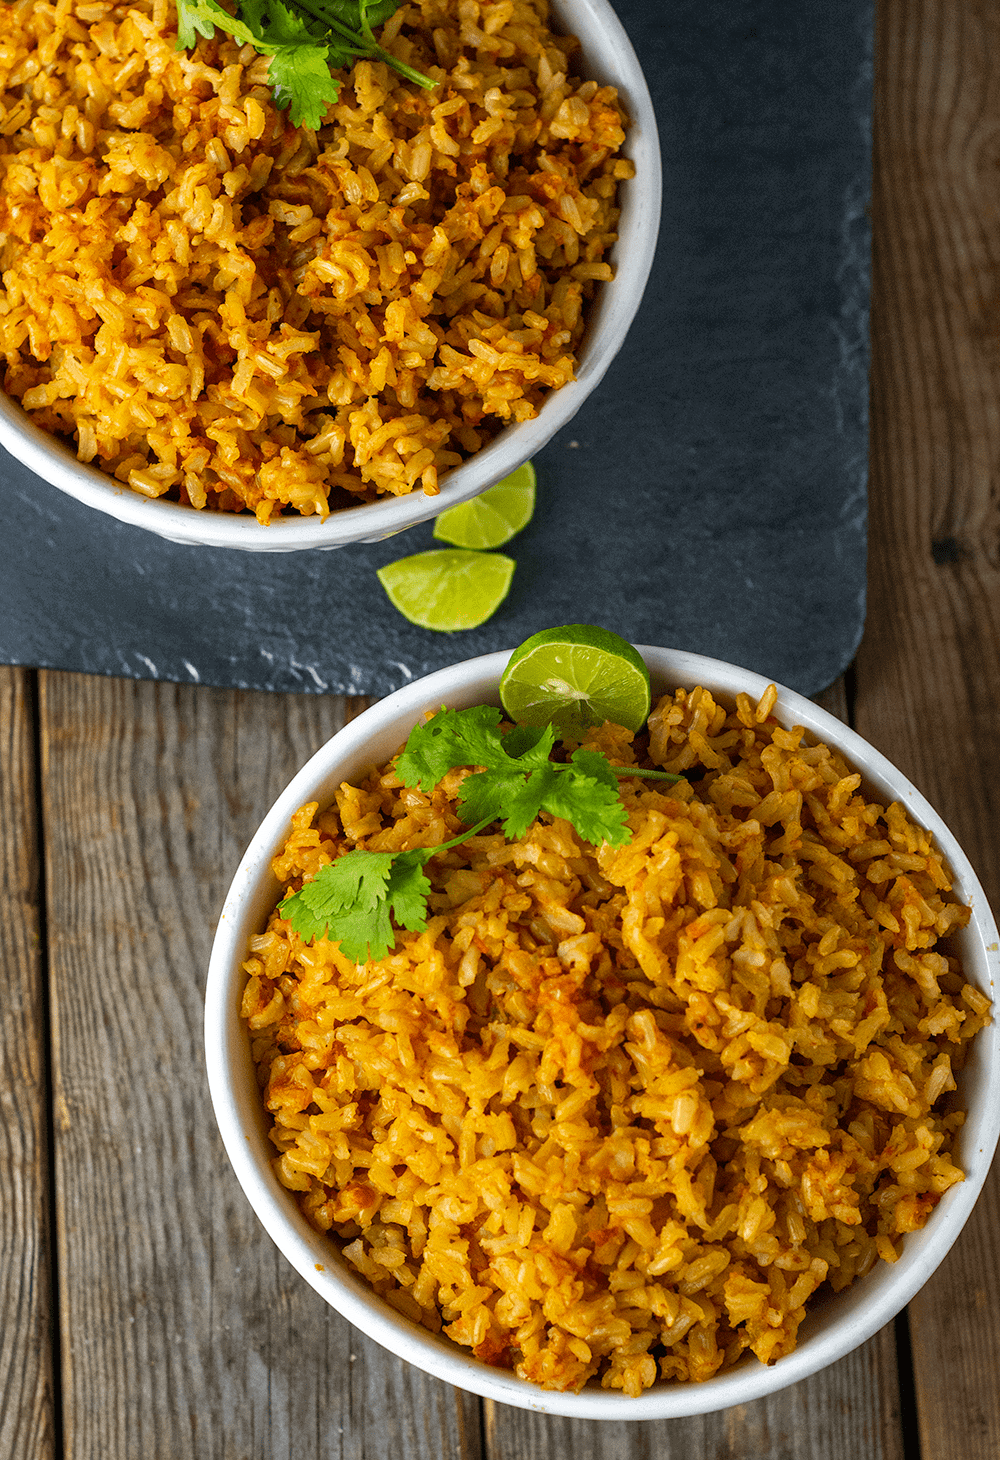 Instant Pot Mexican Rice overlay of rice in two white bowls garnished with lime and cilantro on a wooden background